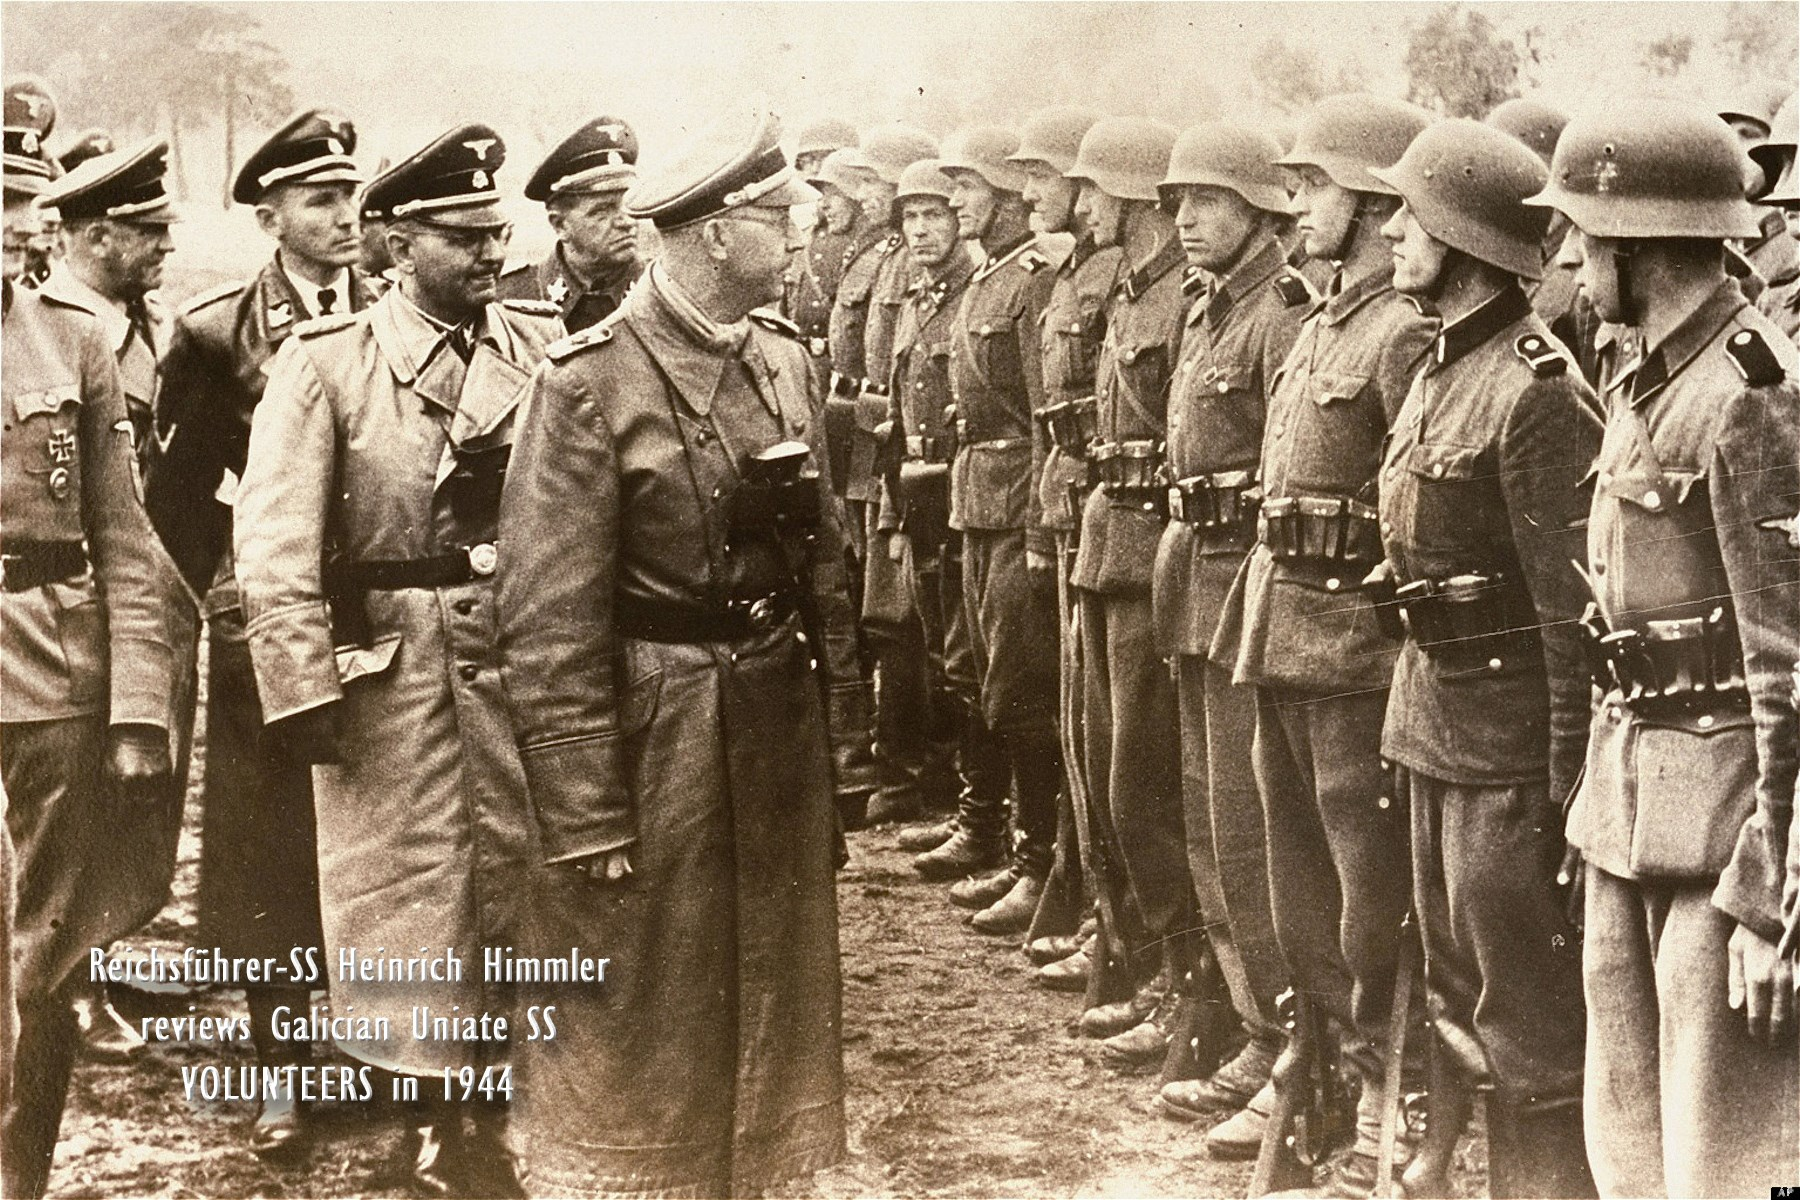 00 himmler and galician uniate nationalist volunteers. 230715